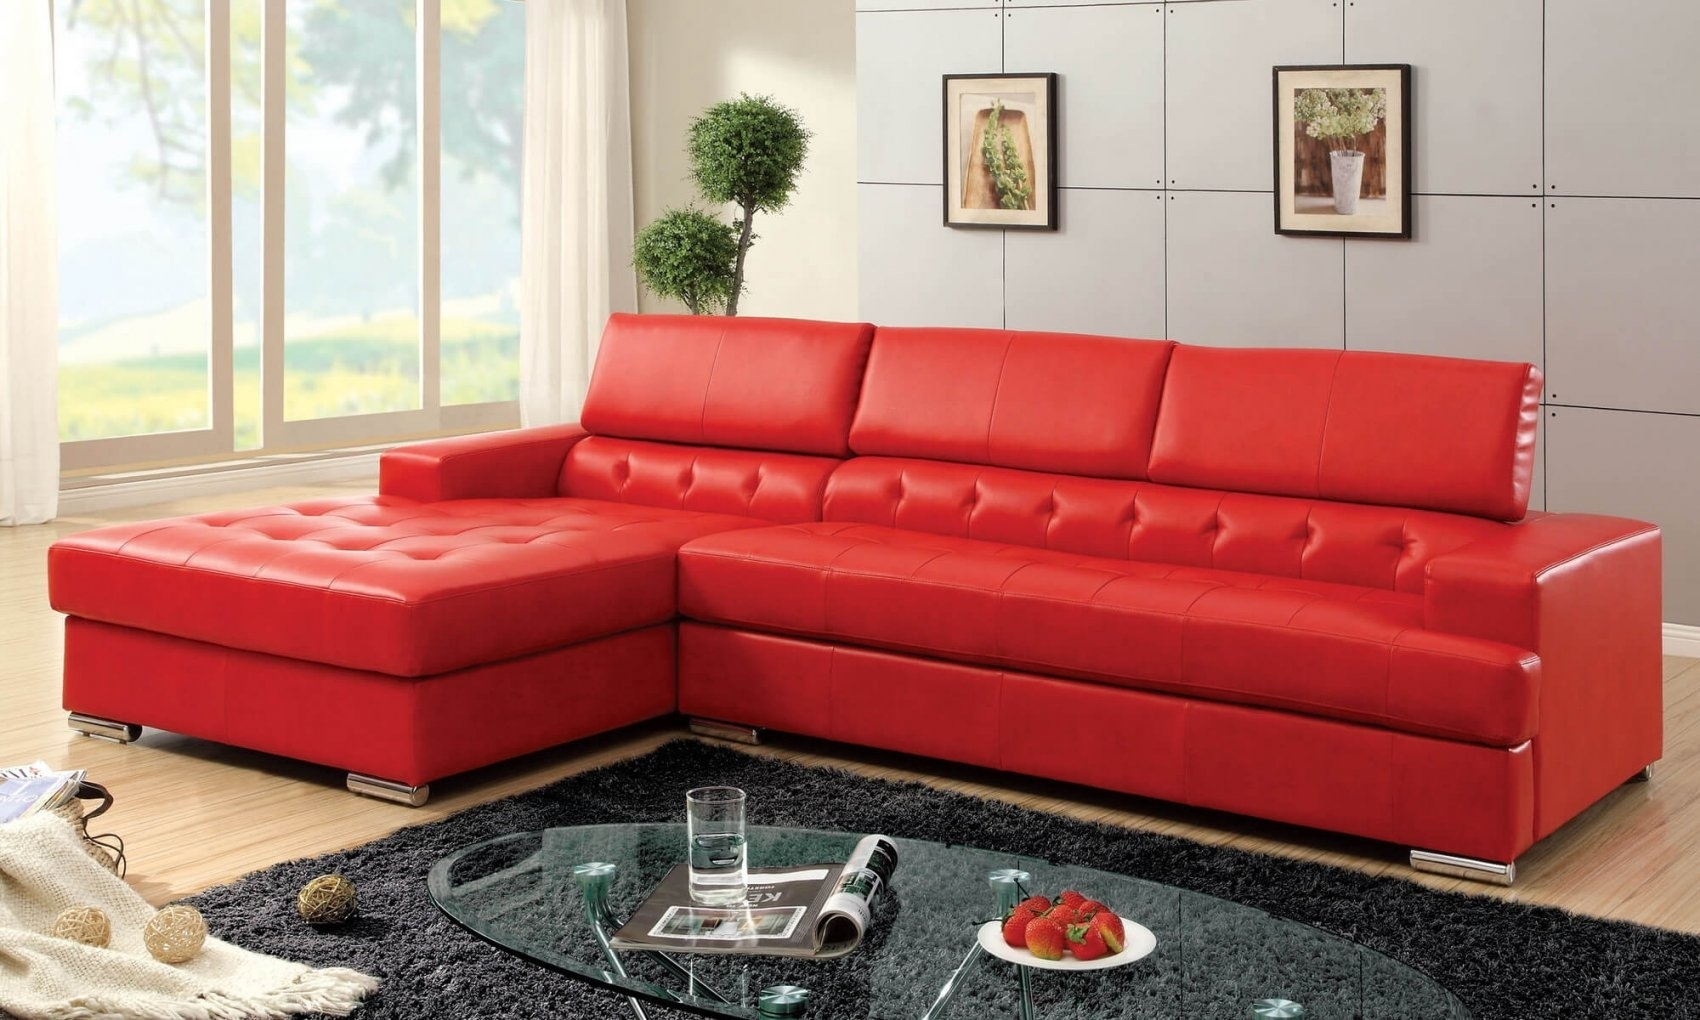 Red Leather Sectional Sofa Contemporary – Best Sectional In In Red Leather Couches (View 10 of 10)